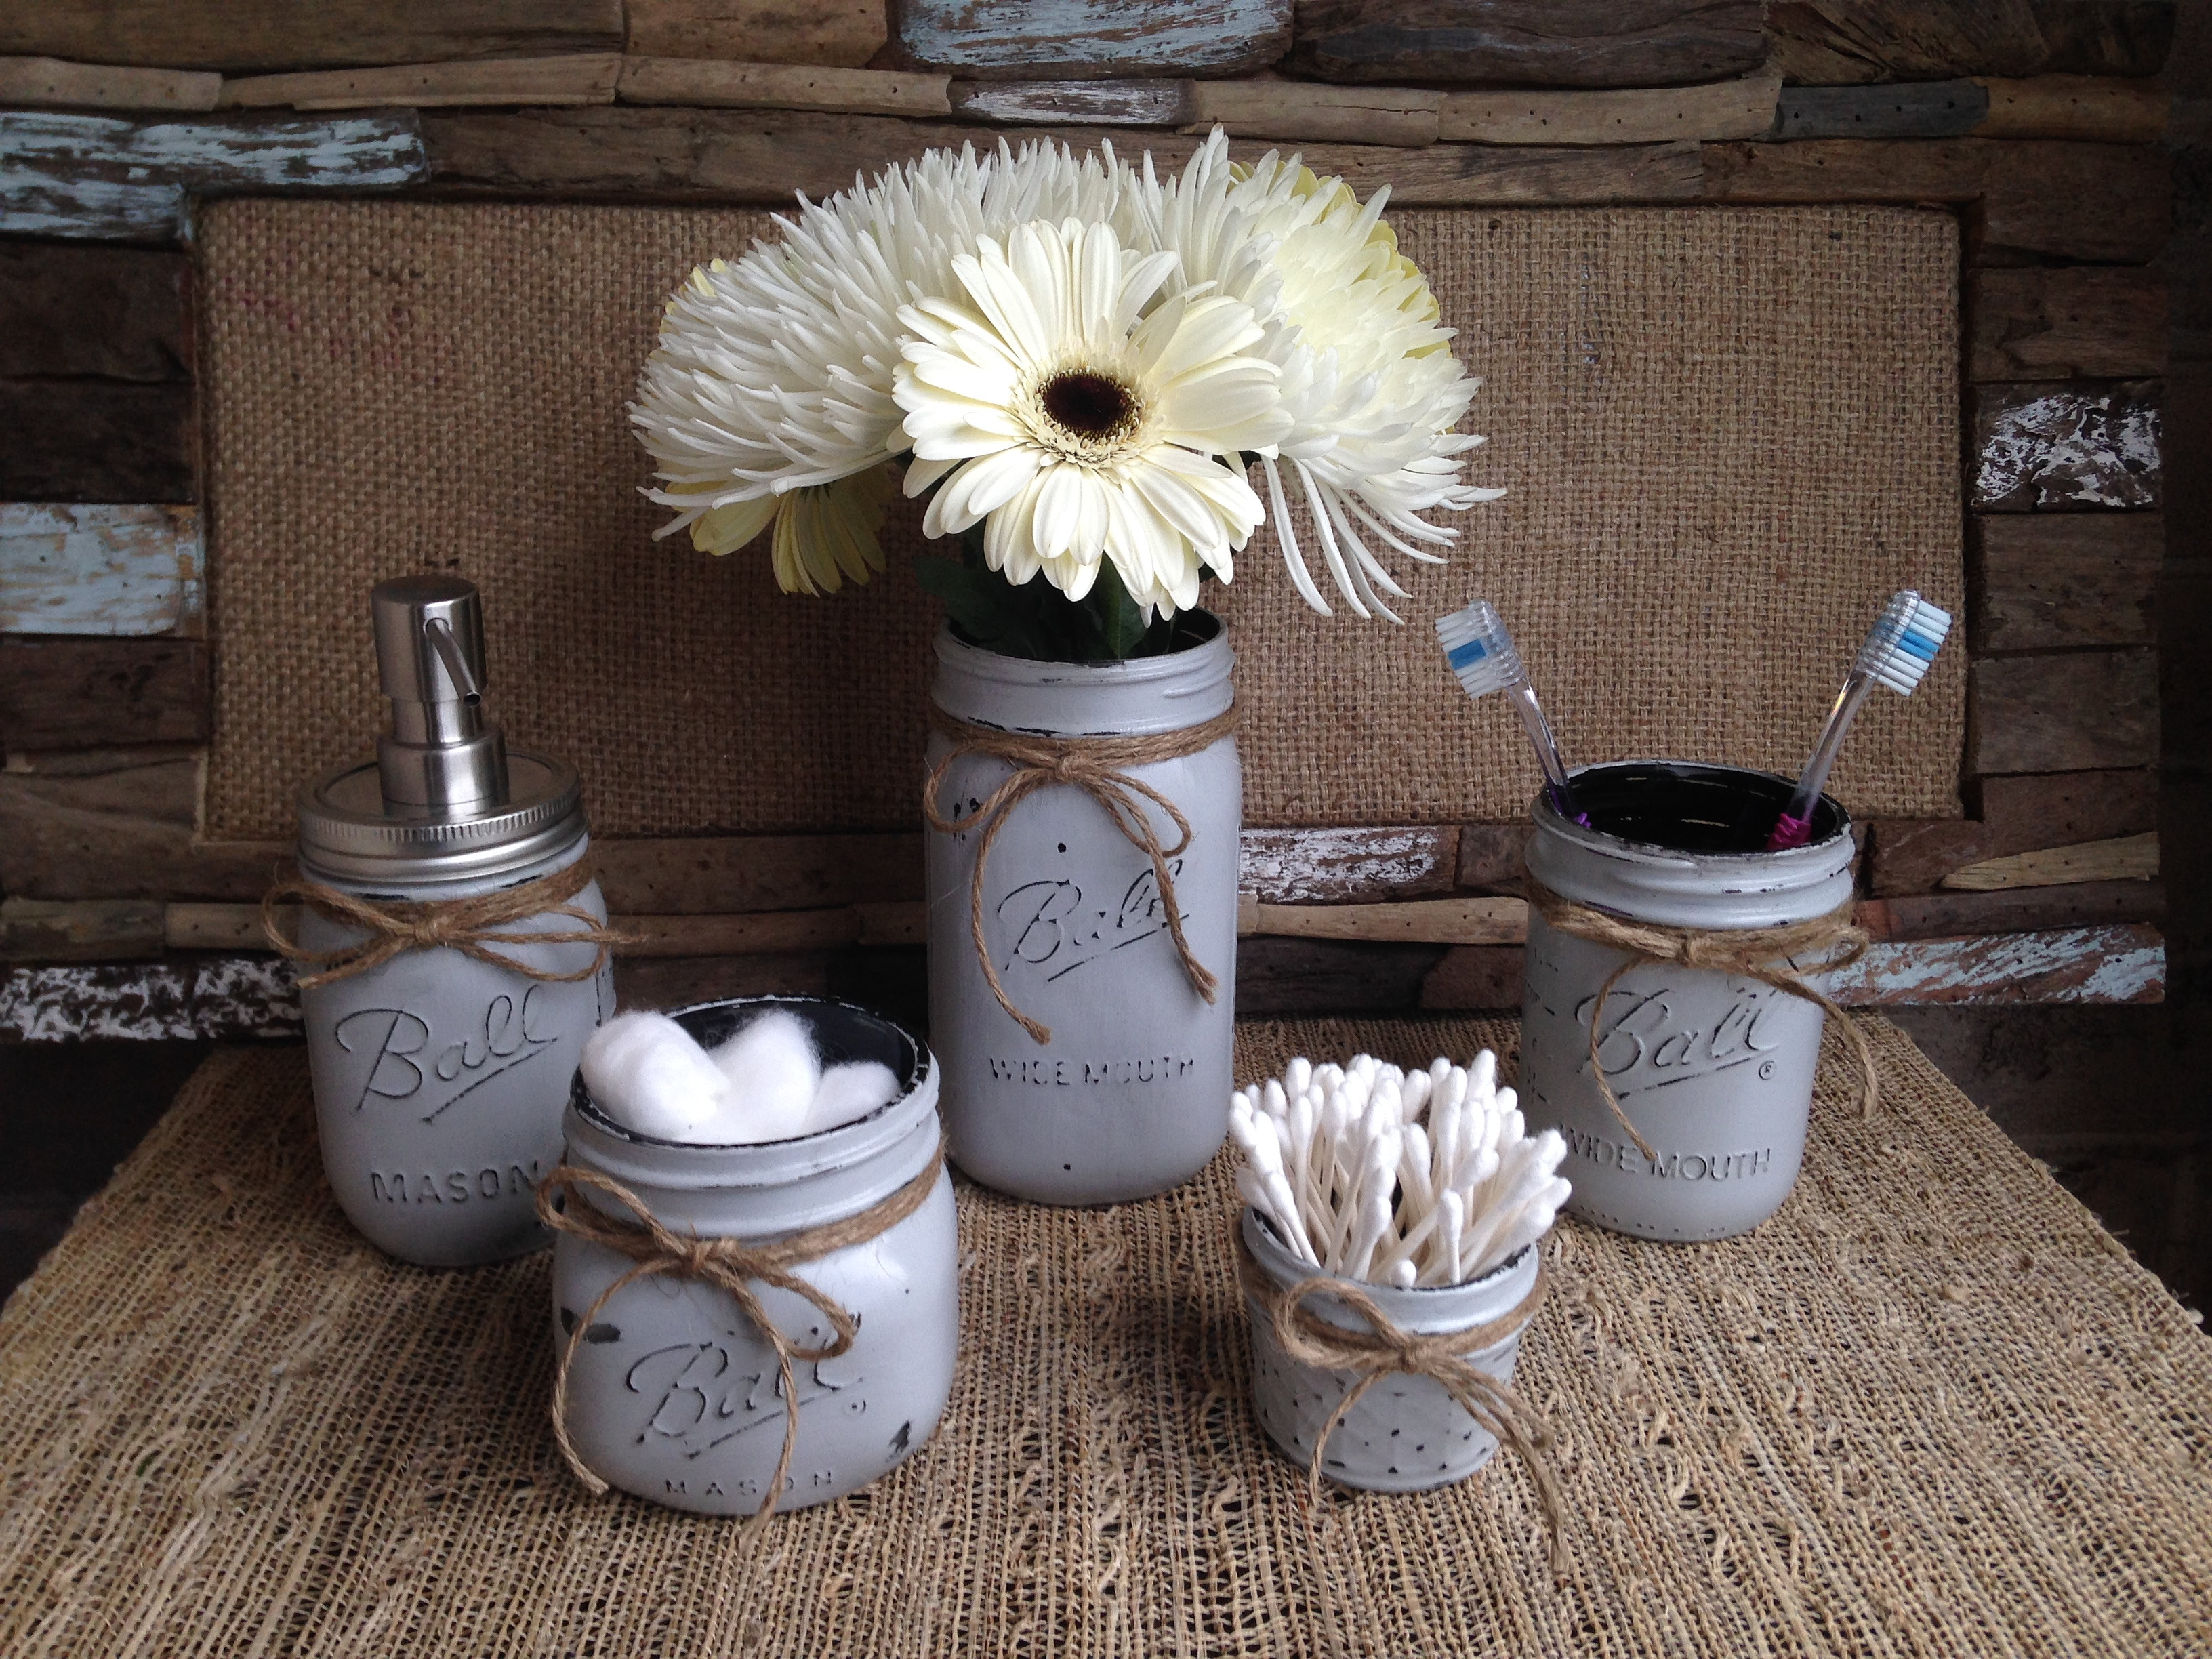 Mason Jar Bathroom Accessories Finishmepretty Masonjars Burlington Mason Jar Bathroom Set